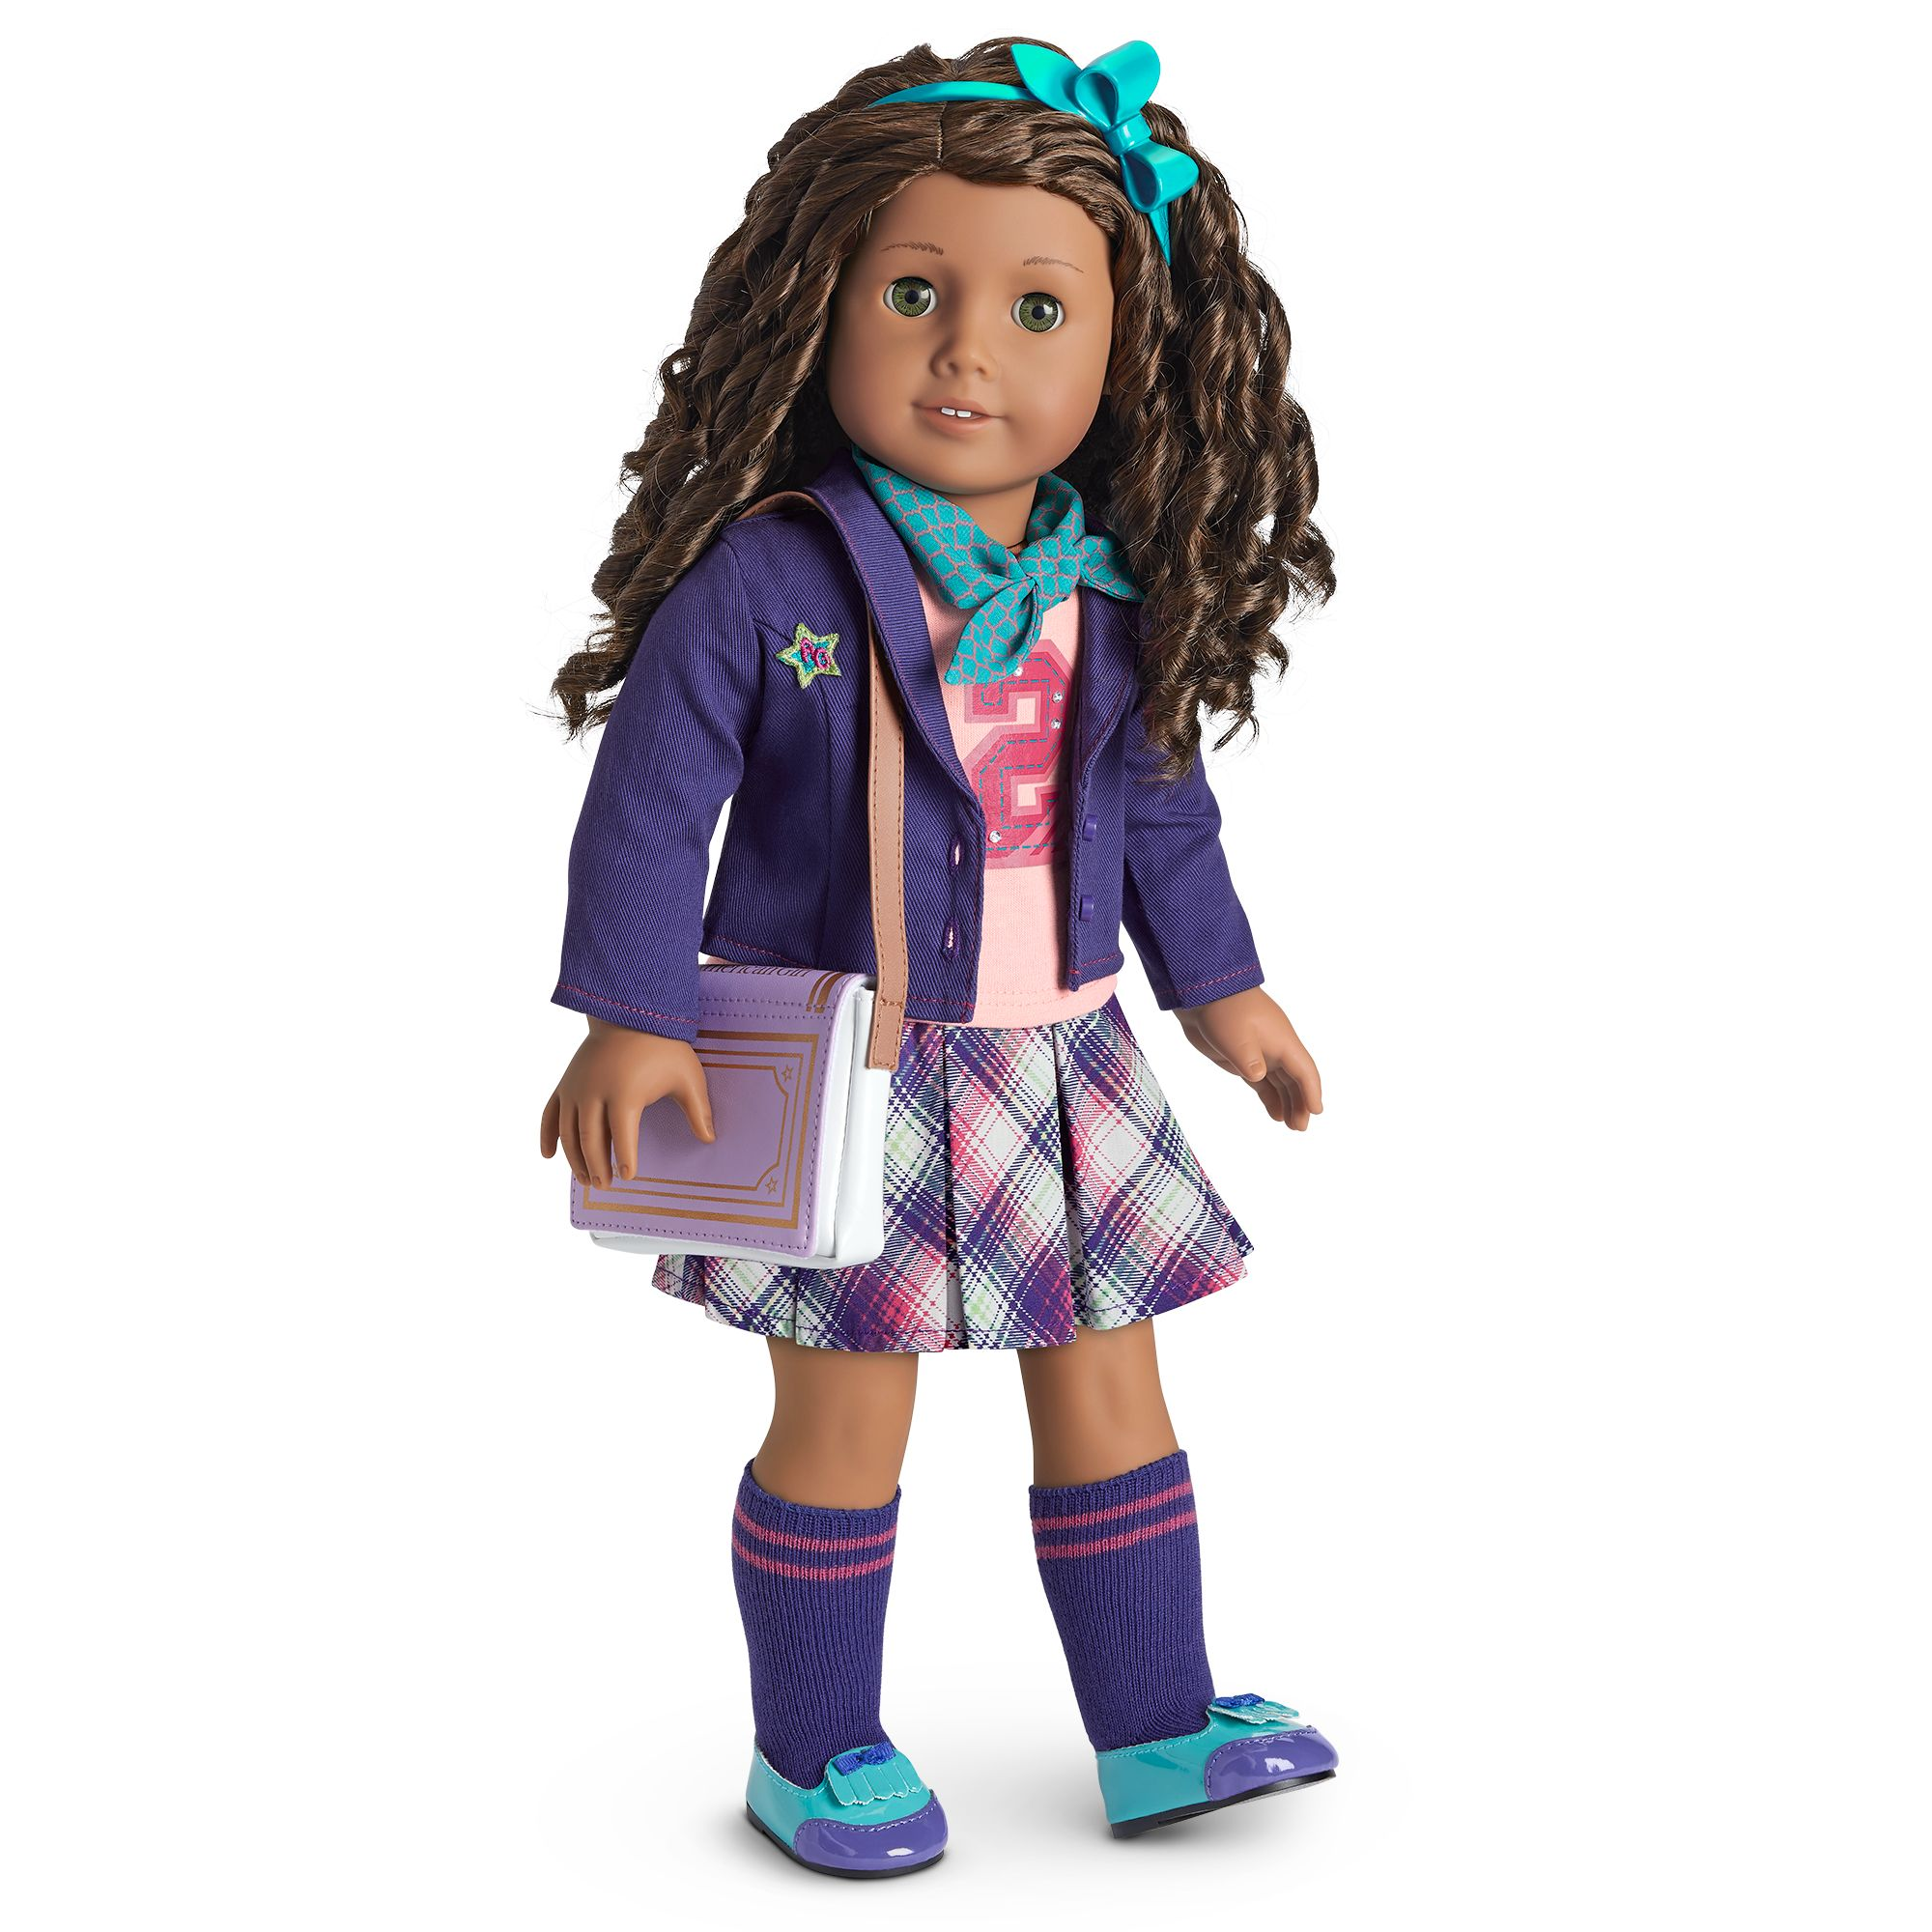 Image result for american girl ready to learn outfit